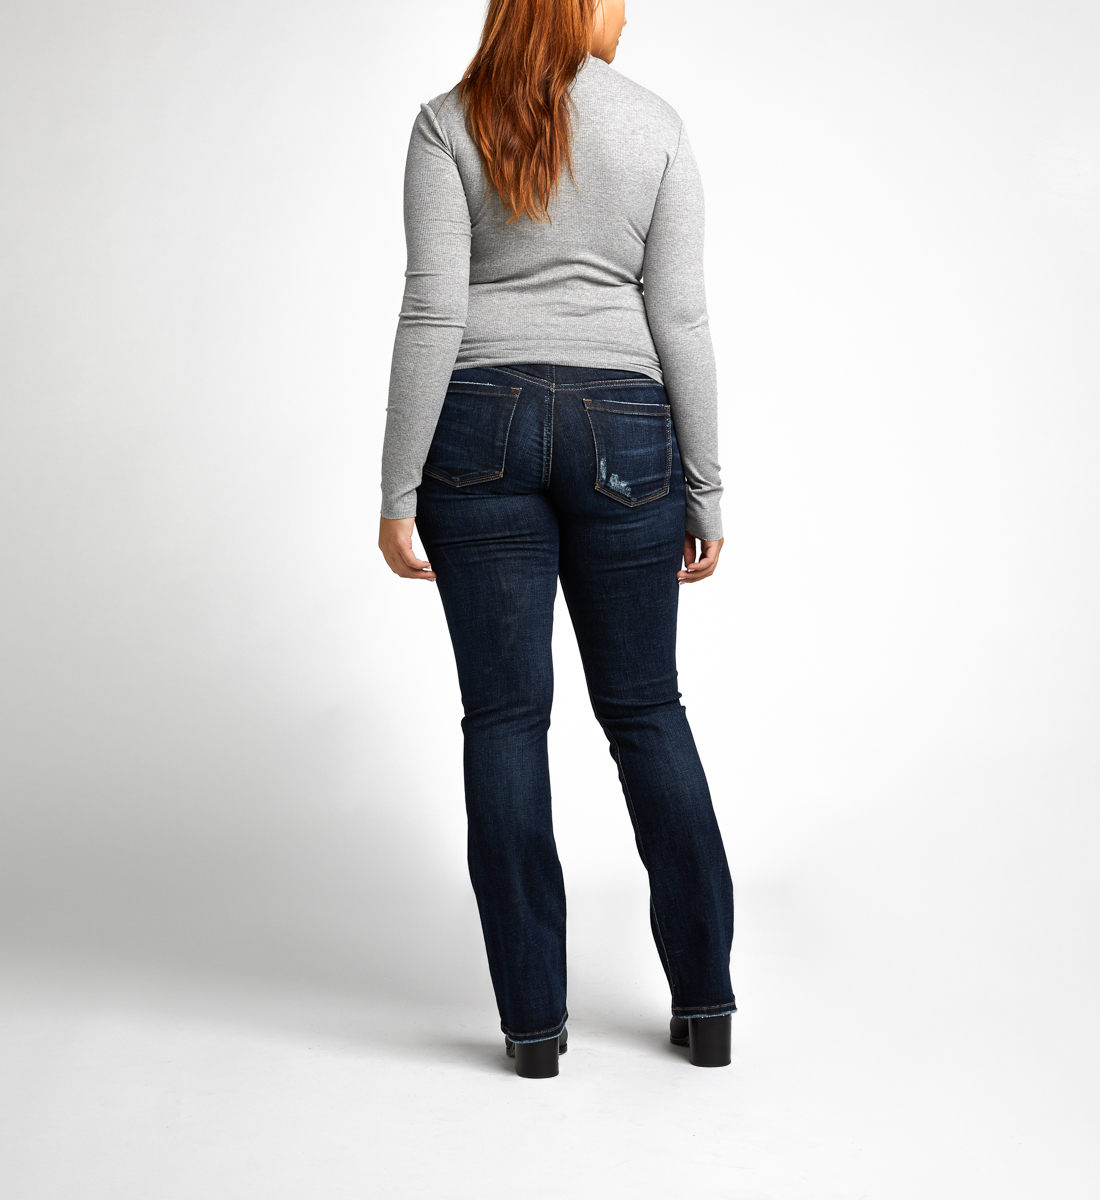 Elyse Slim Bootcut Maternity Jeans Side